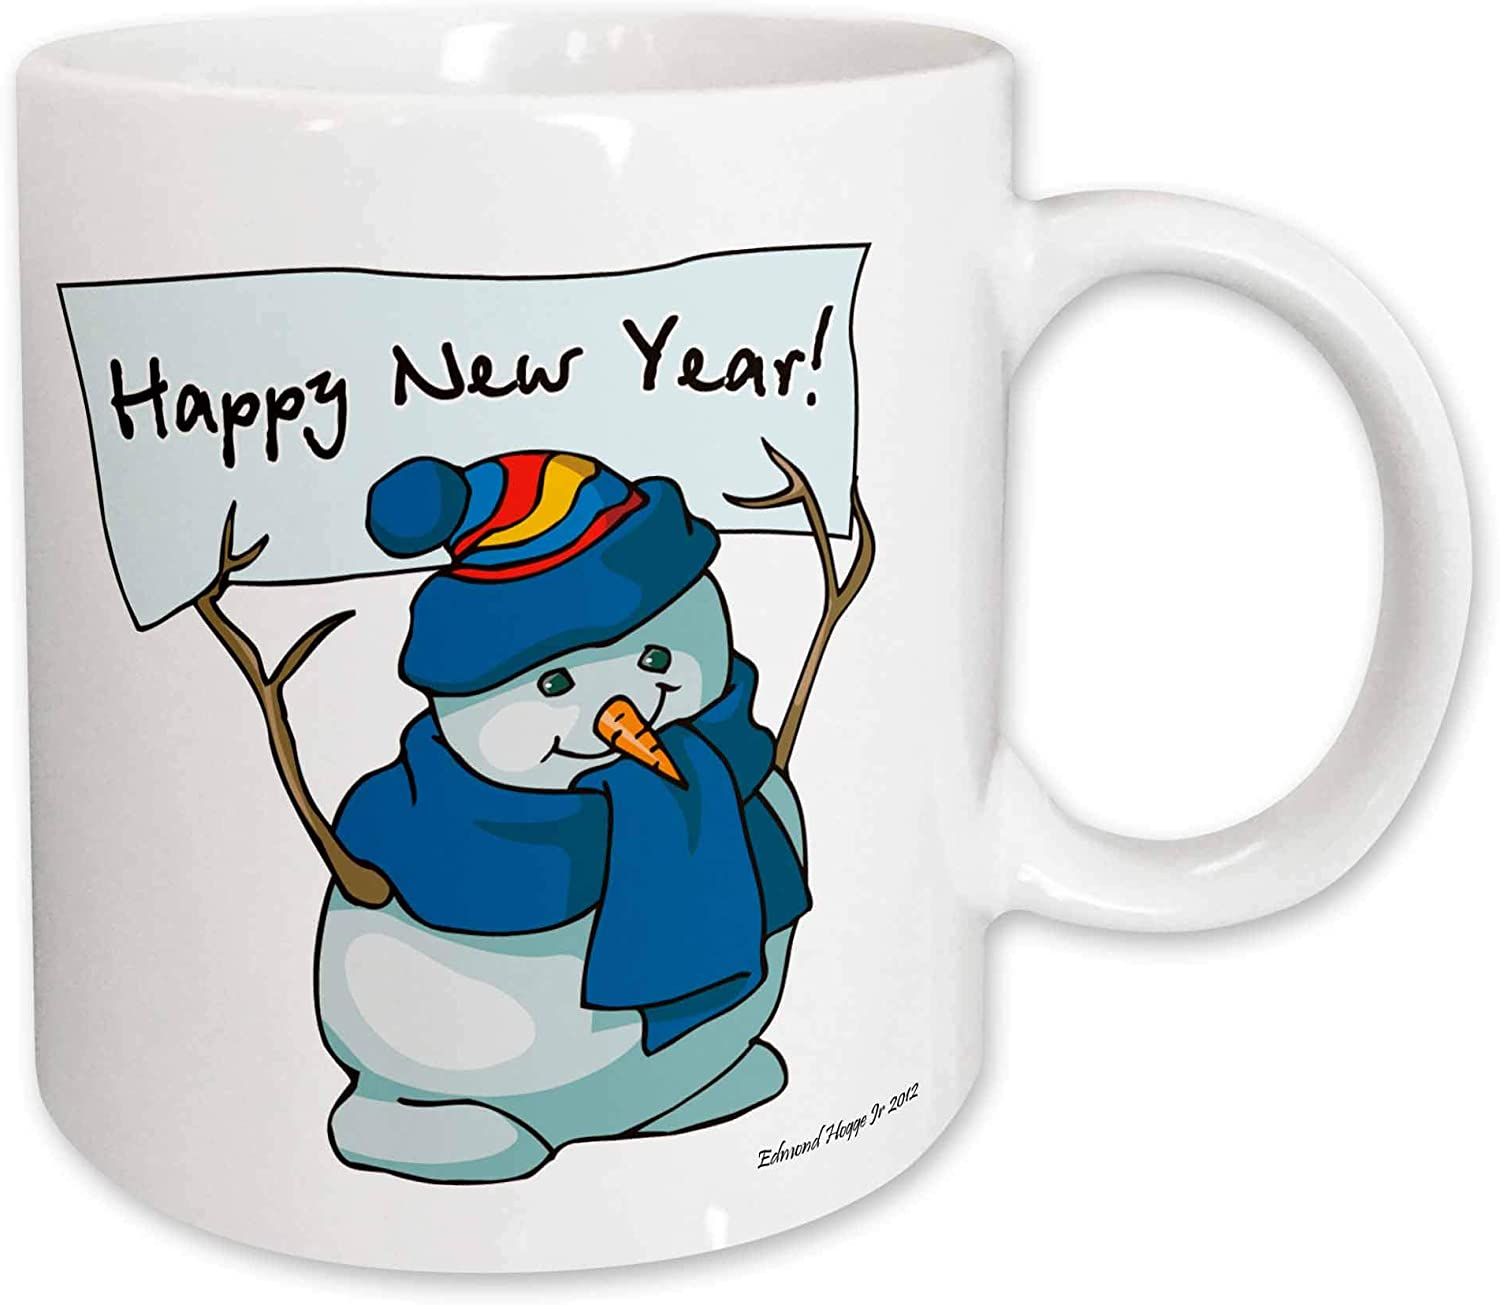 3dRose Happy New Year Snowman Ceramic Mug, 15-Ounce